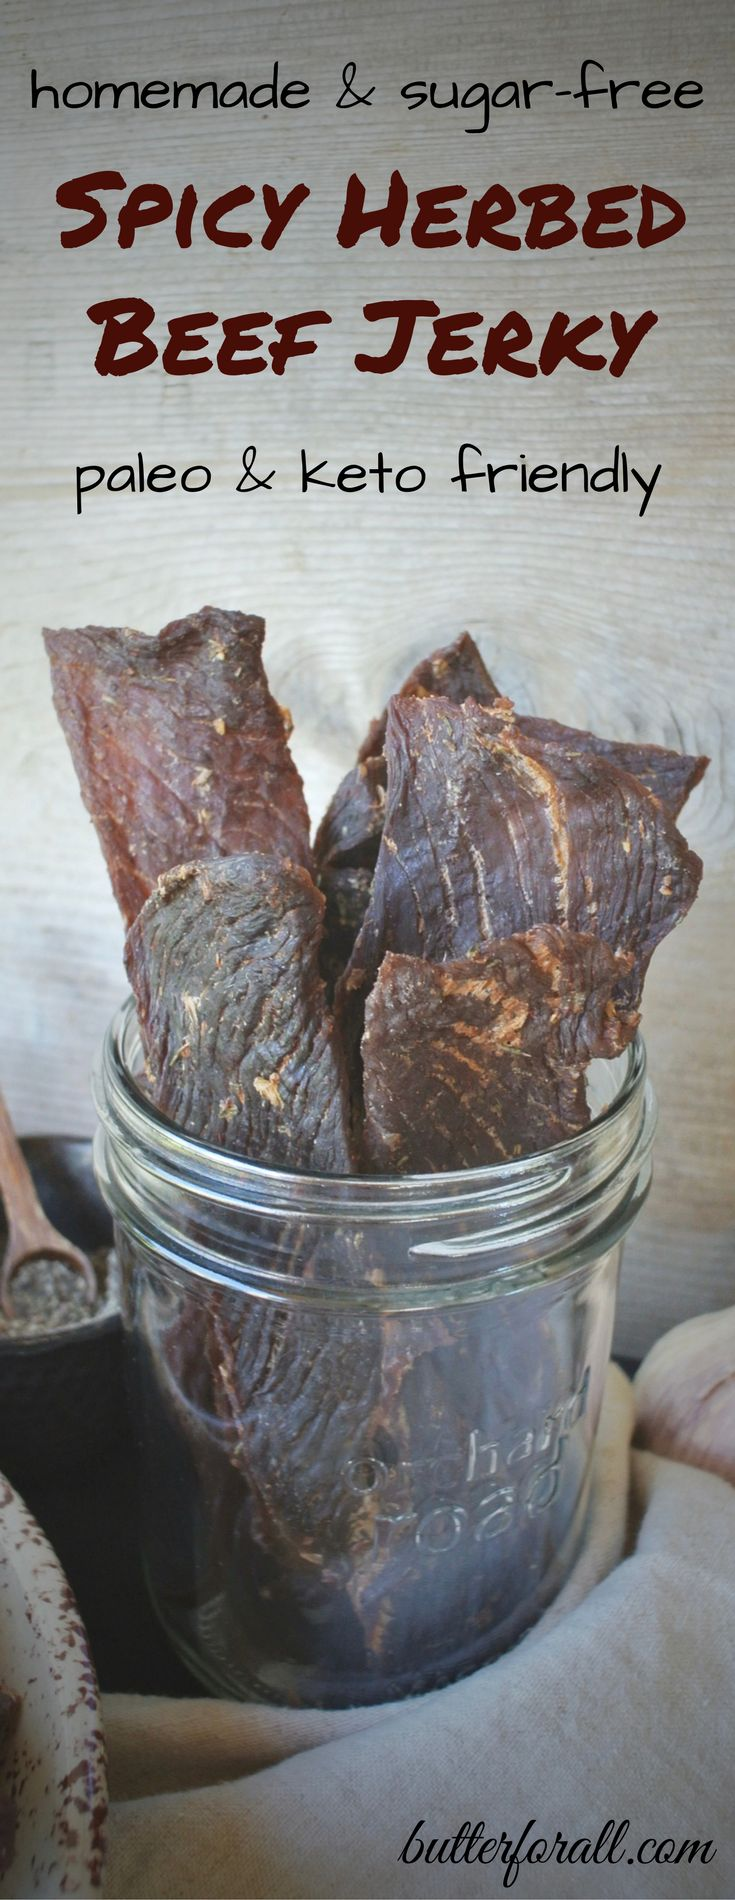 Real, spicy, herby grass-fed beef jerky that is paleo and keto friendly! Easy to make and easy to take. Get the recipe by visiting the Butter For All blog now!